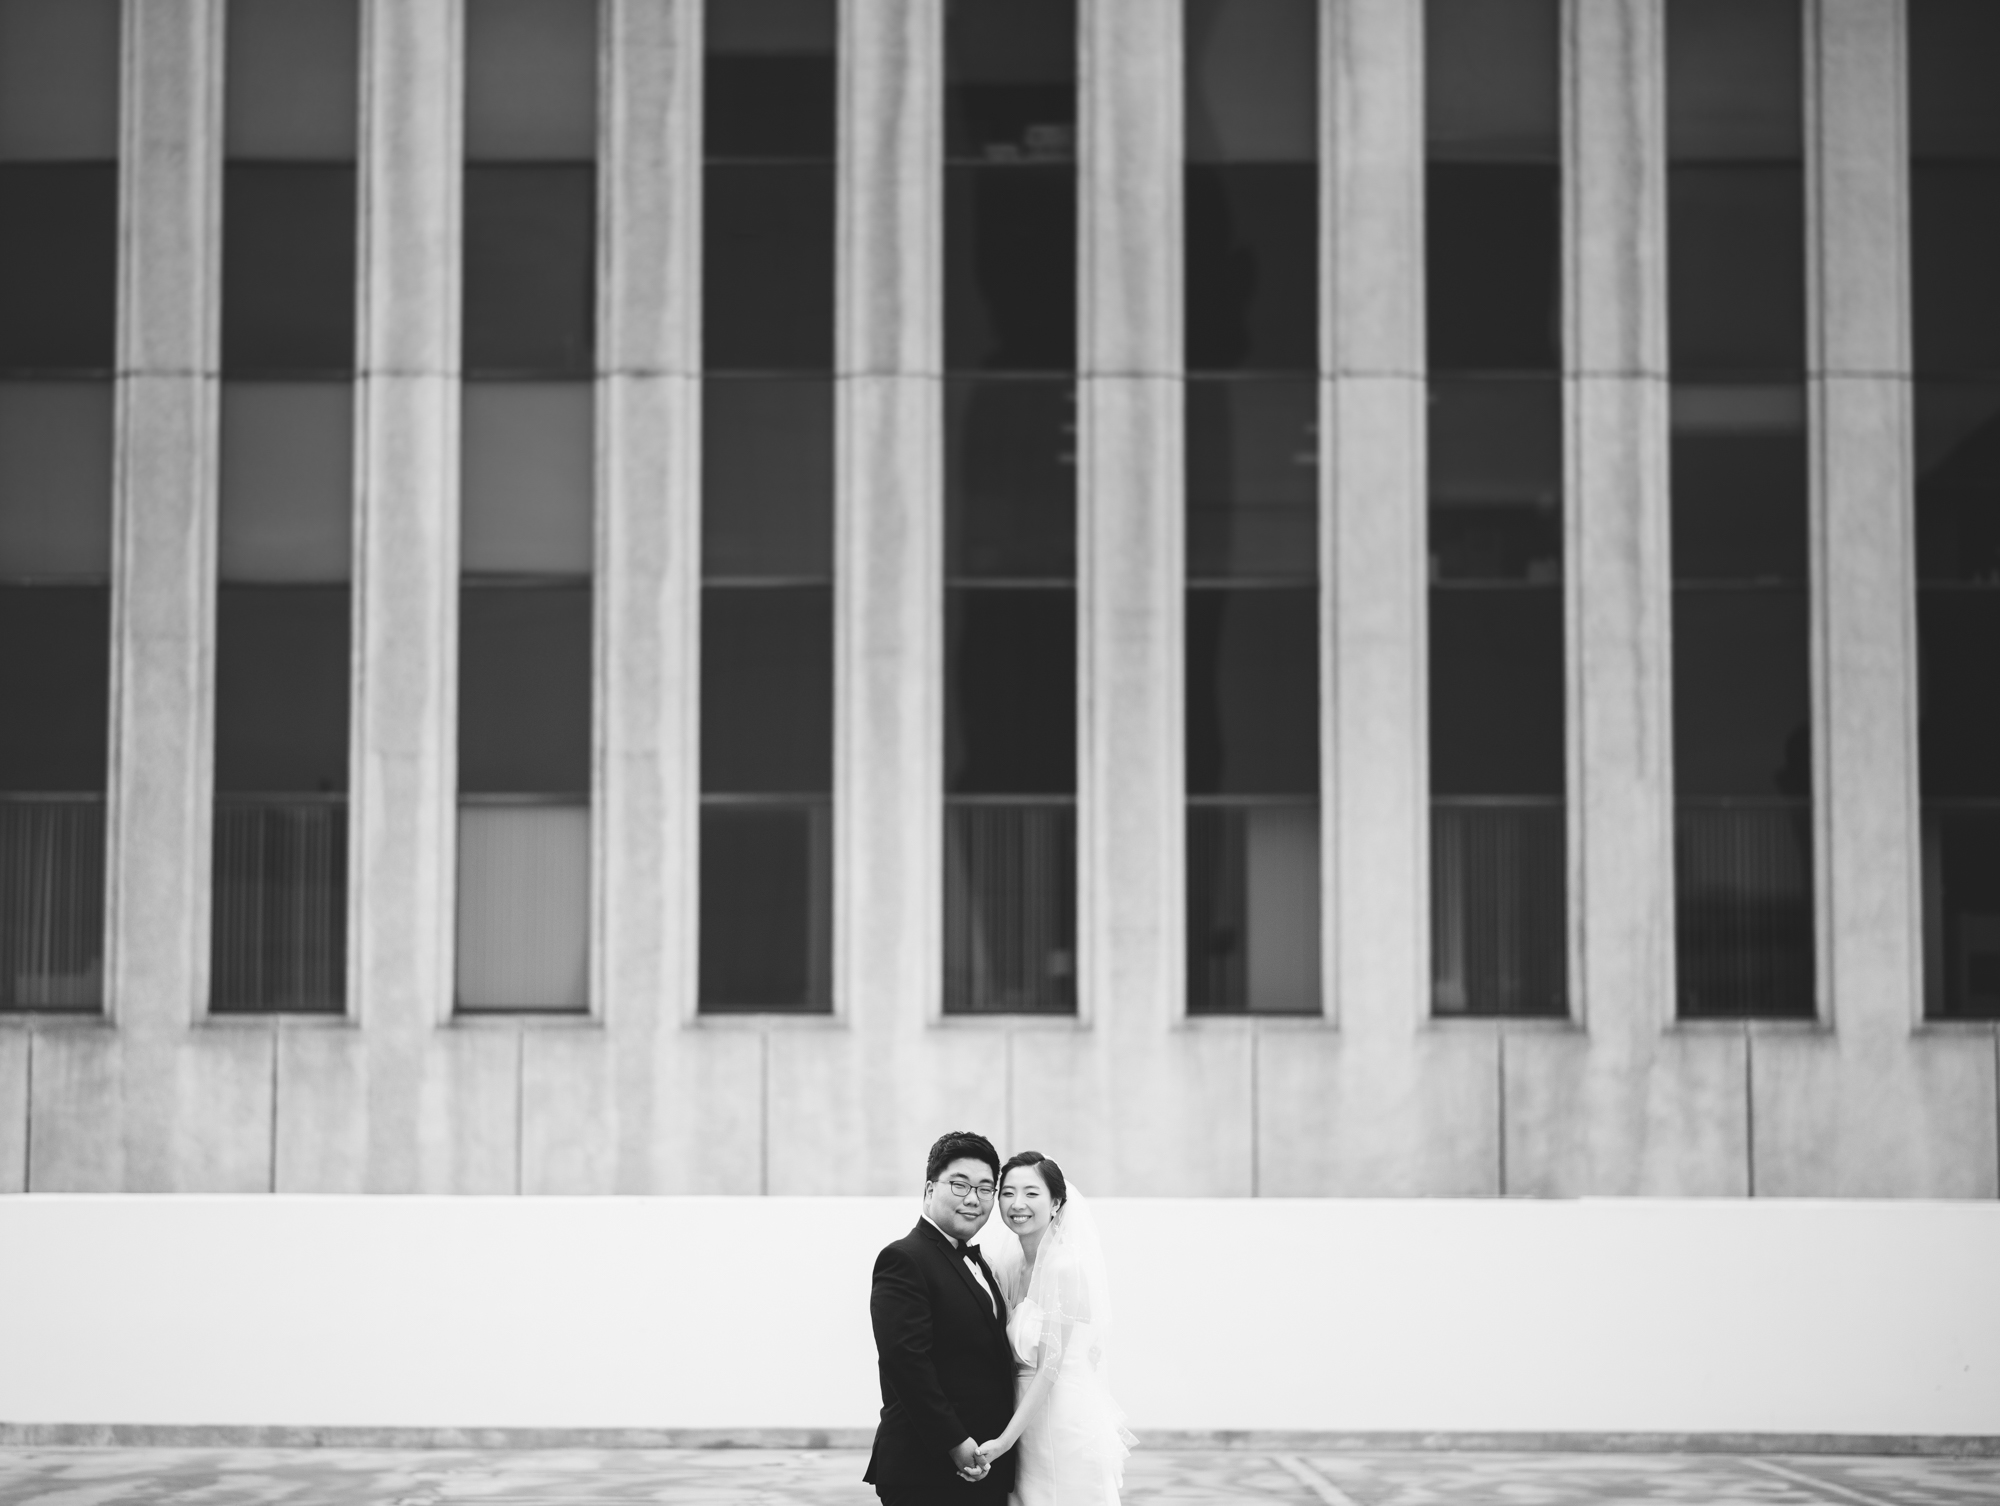 ©Isaiah & Taylor Photography - Destination Wedding Photographers - Downtown Los Angeles Parking Lot Rooftop Wedding-009.jpg